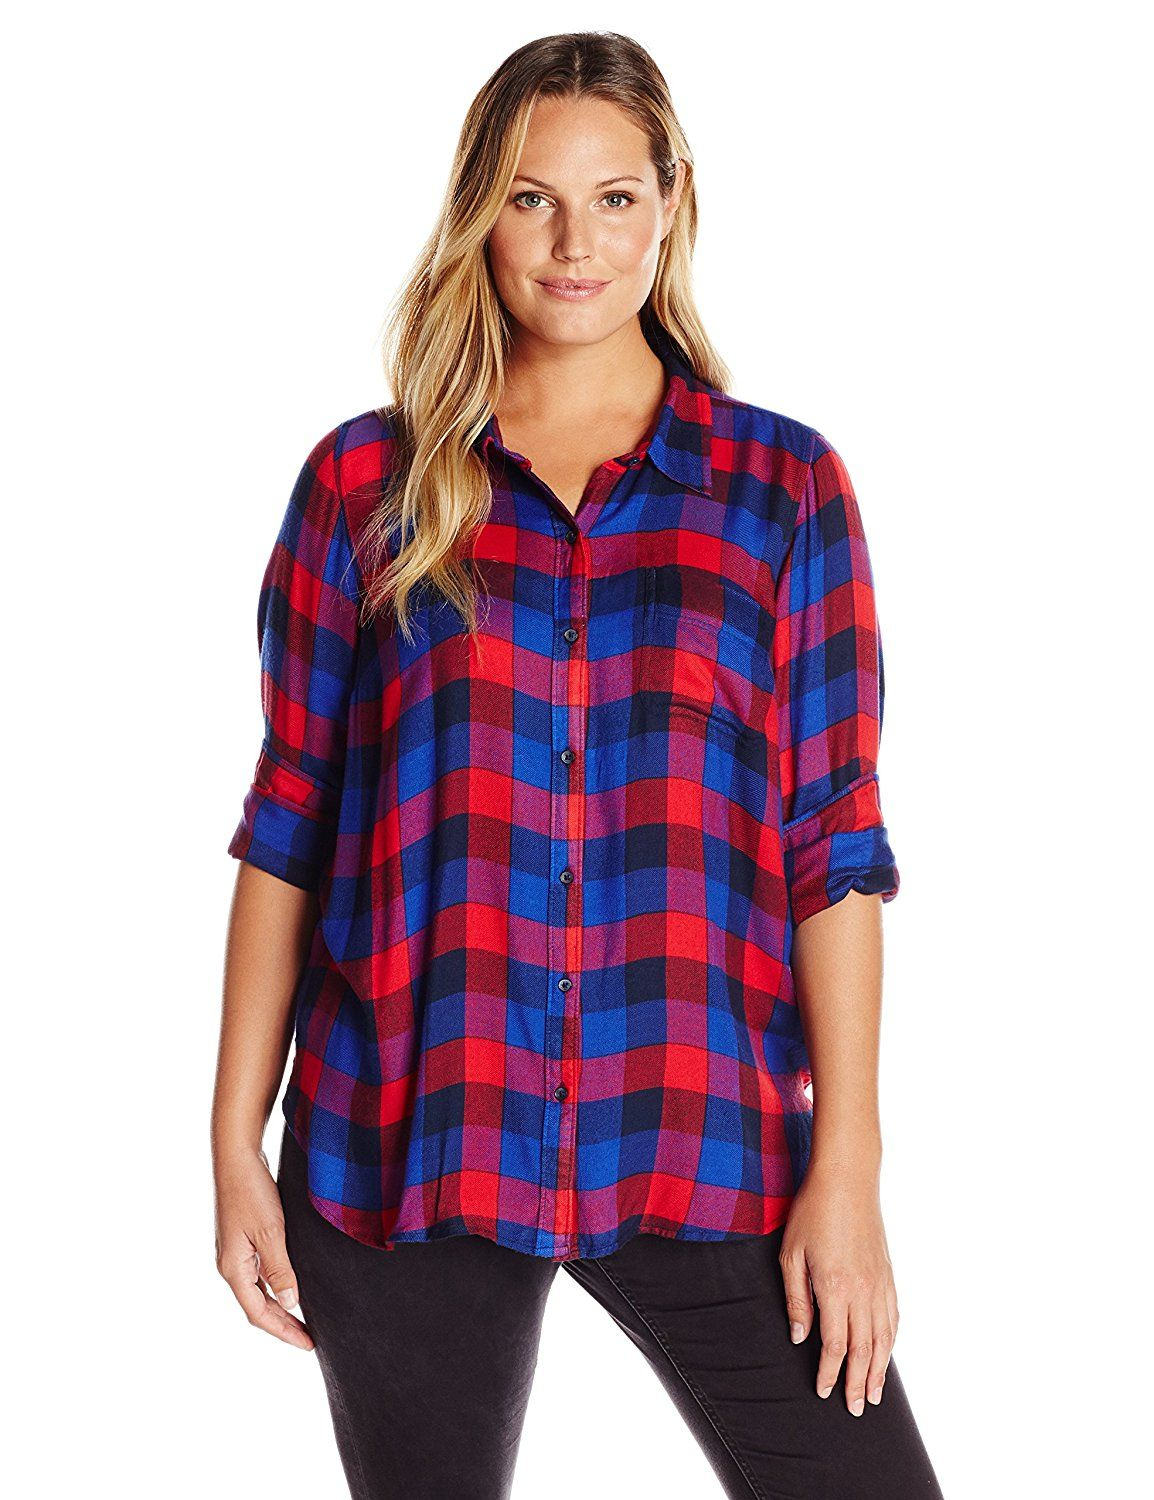 db8252e5755cc Lucky Brand Women s Plus-Size Bungalow Plaid Shirt    To view further